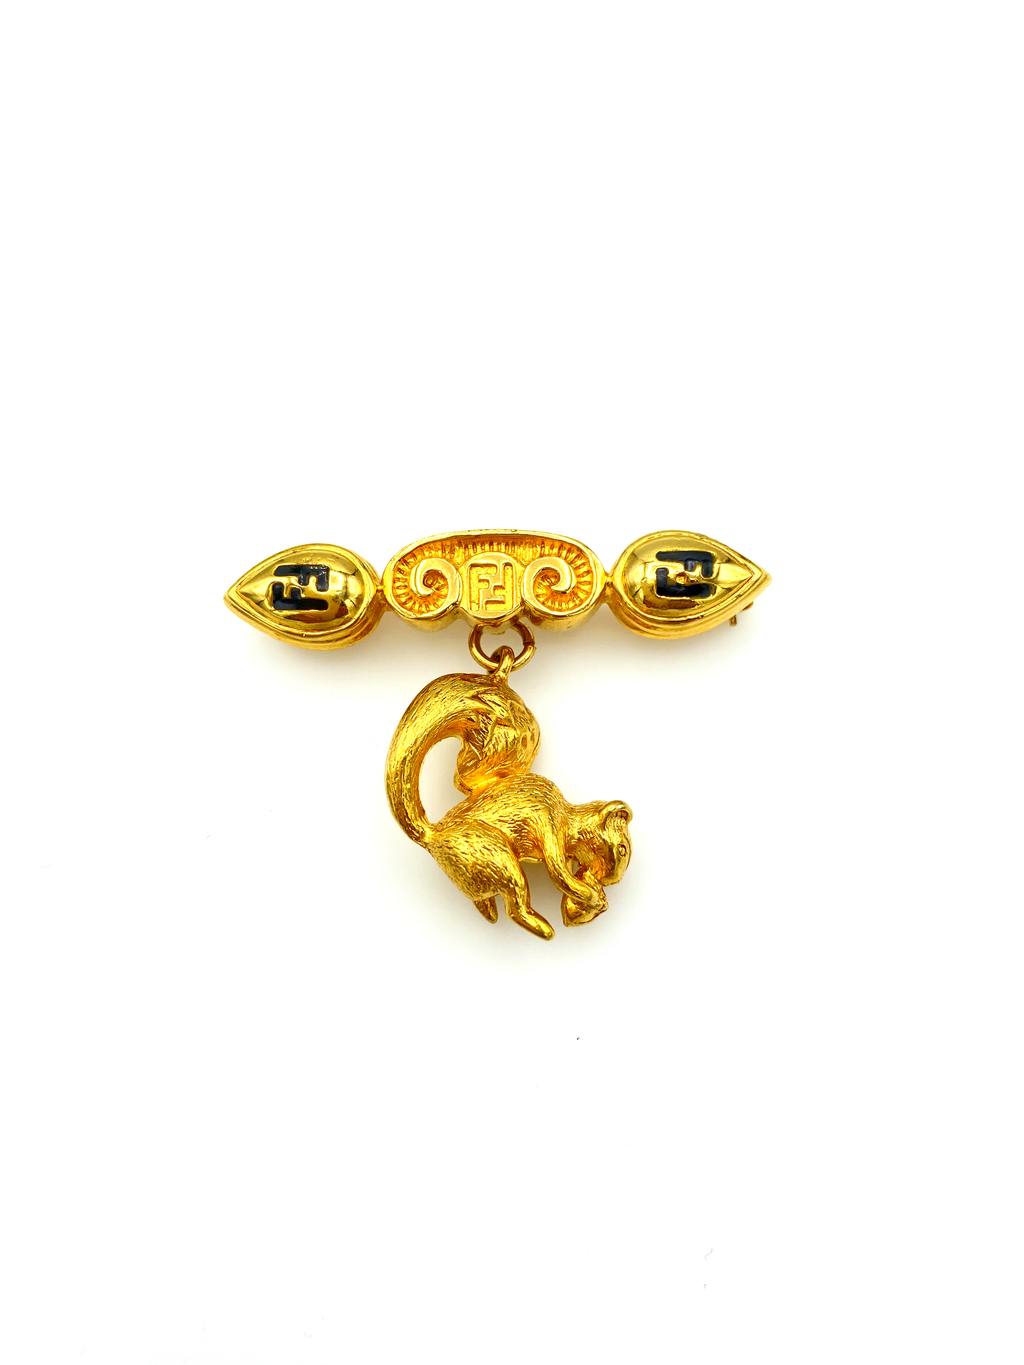 Fendi Iconic Gold Logo Squirrel Charm Vintage Brooch-Sustainable Fashion with Vintage Style-Trending Designer Fashion-24 Wishes